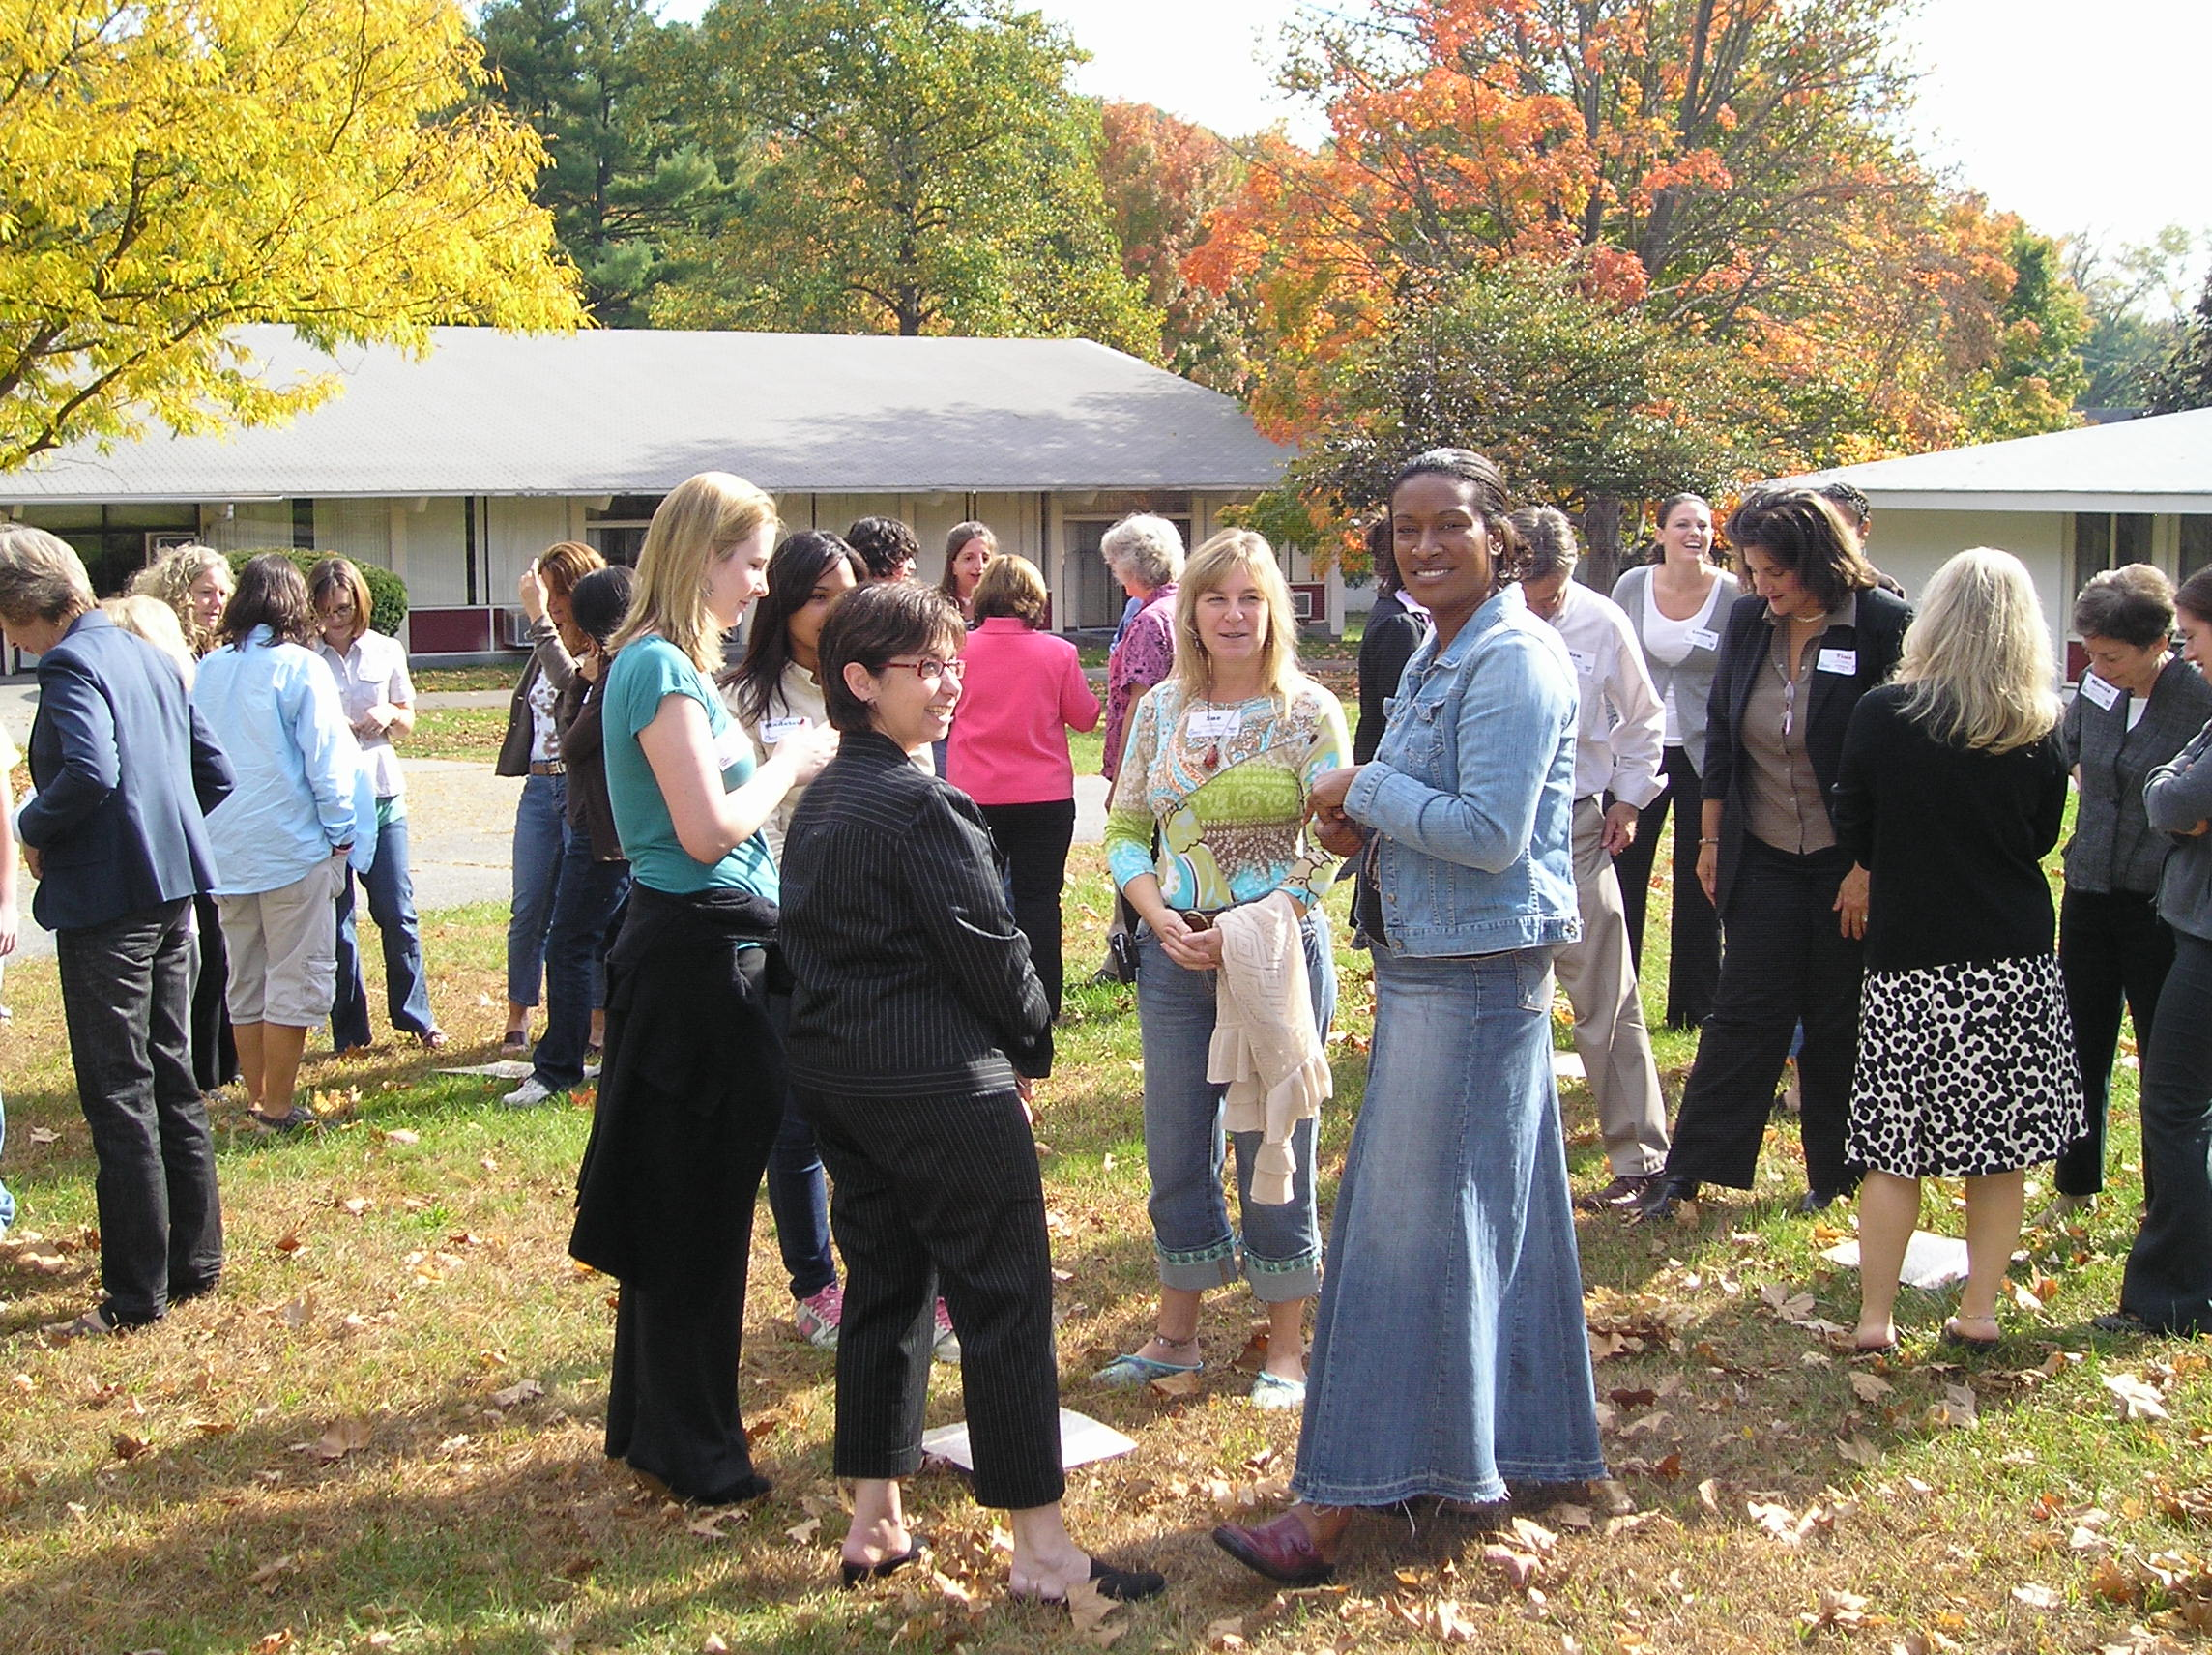 People enjoying a fall day at Stony Point Center